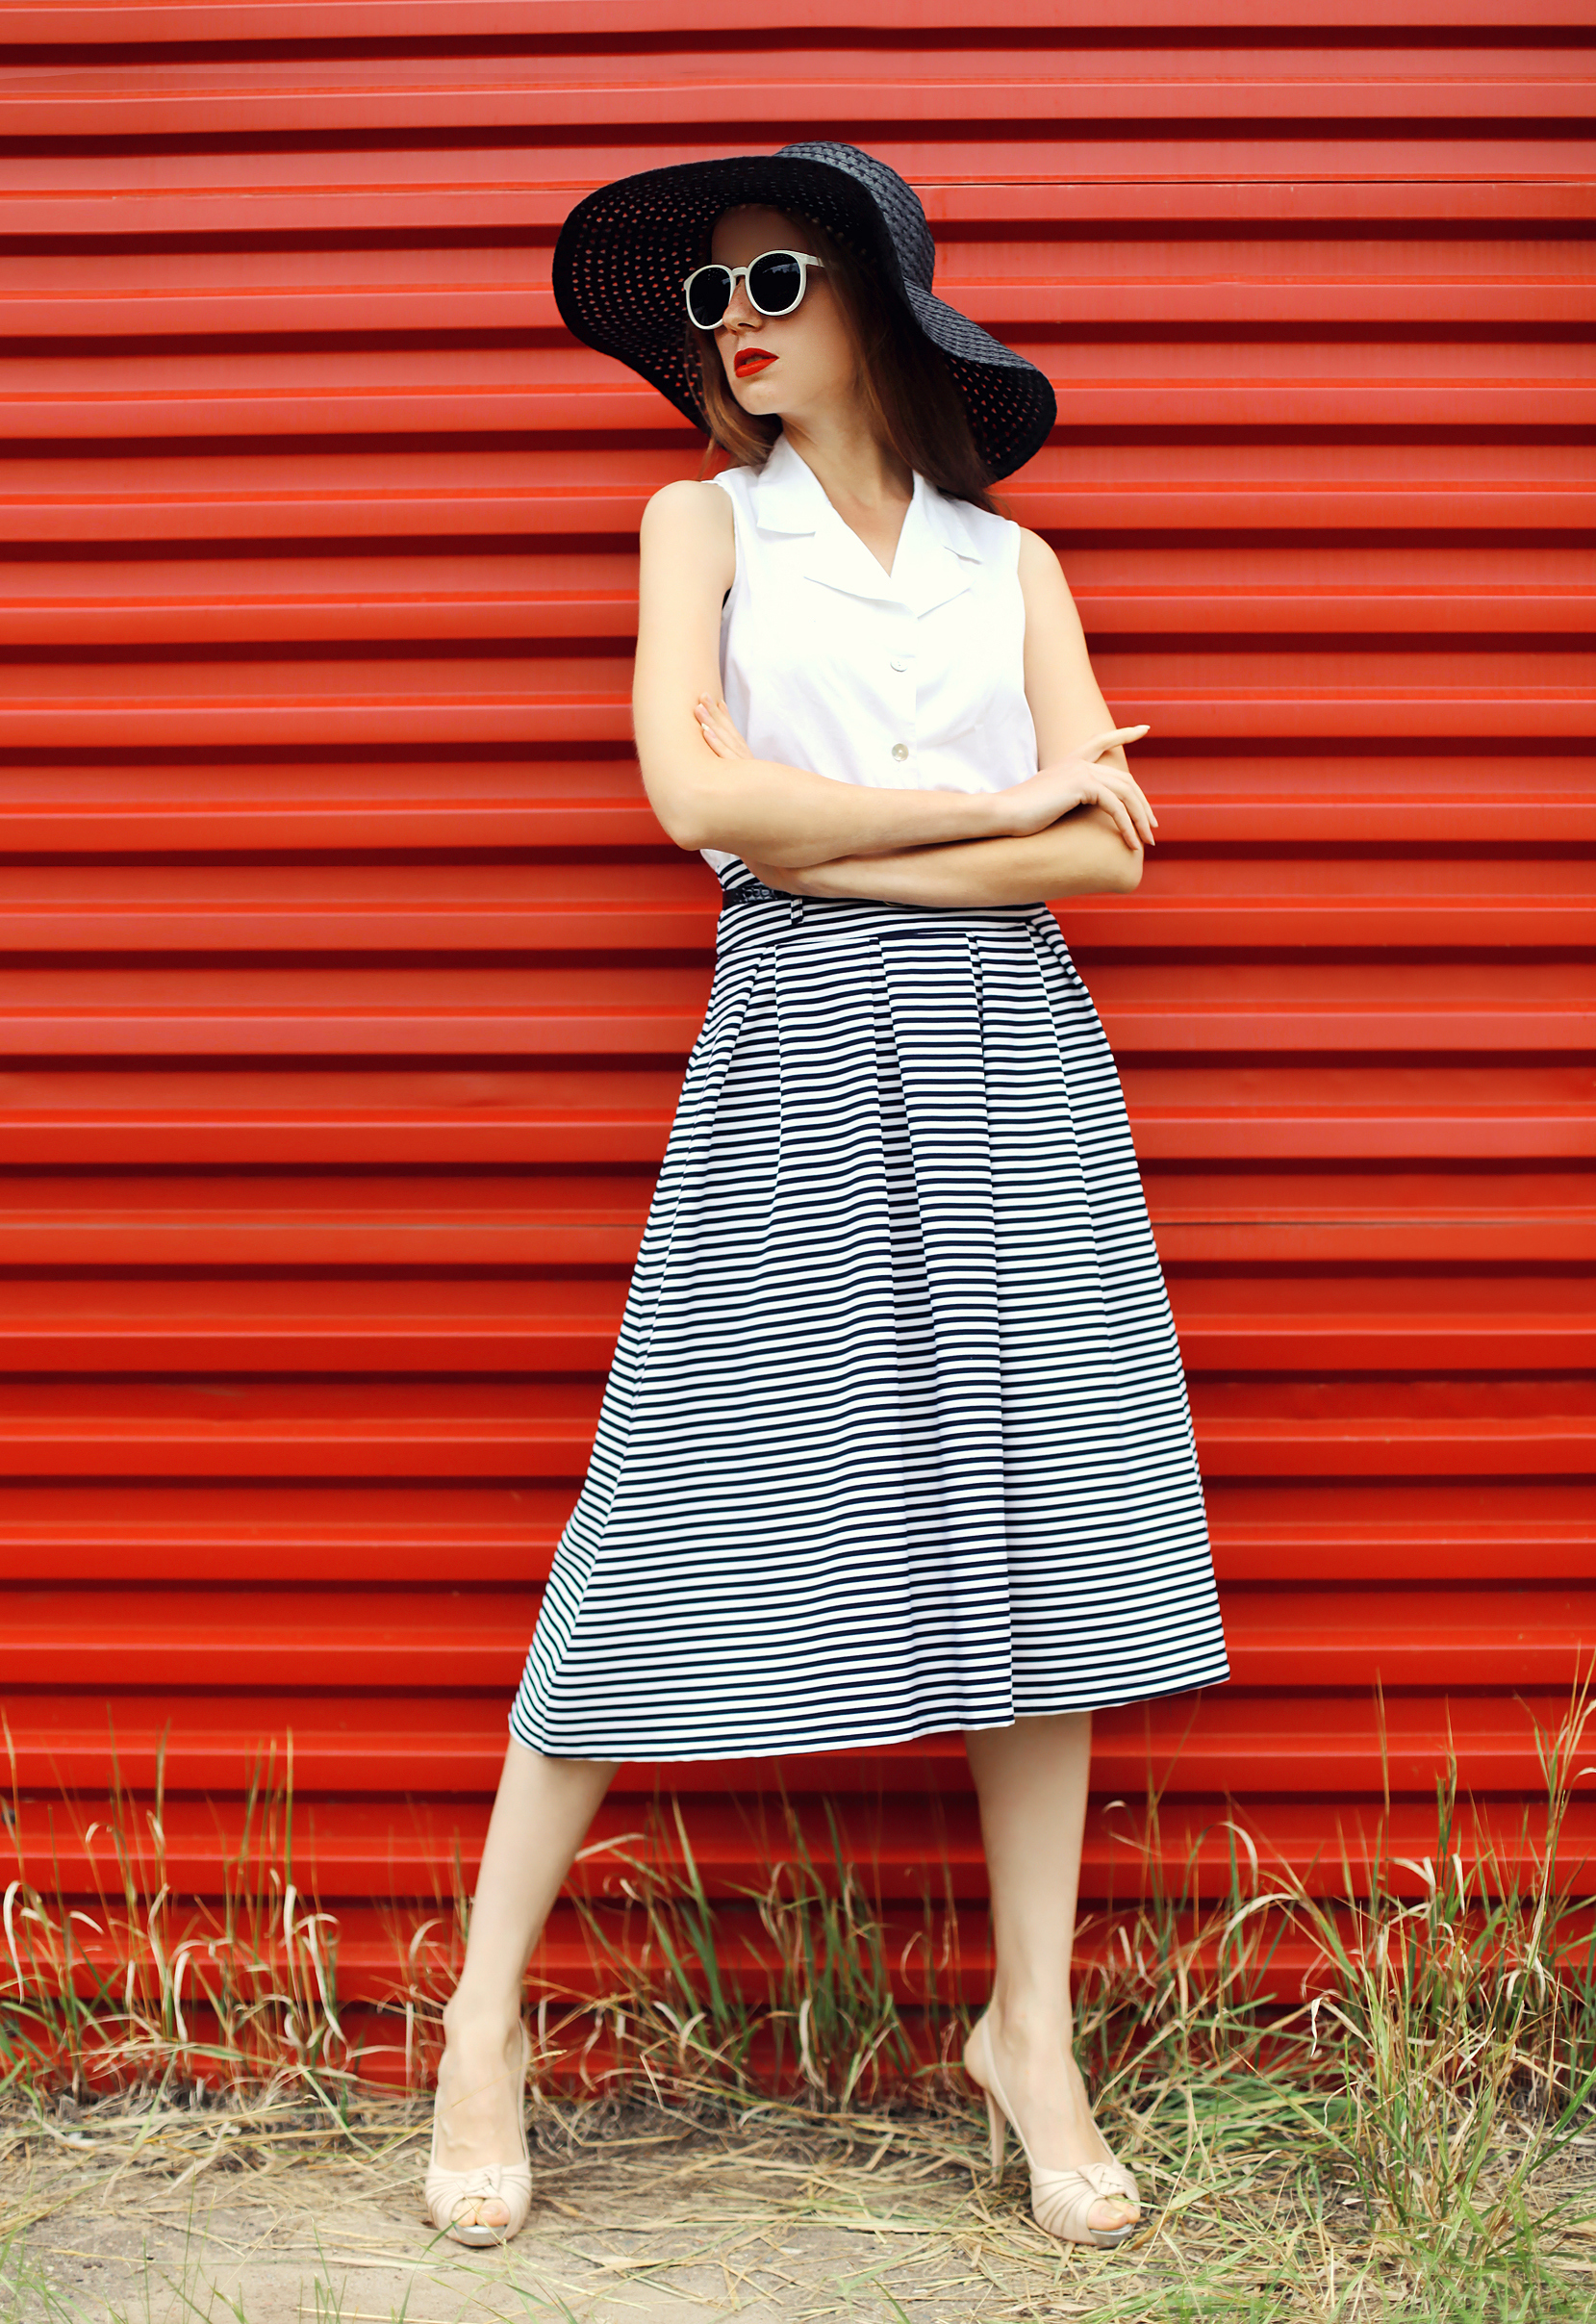 Fashion beautiful woman wearing a black straw hat, sunglasses and striped skirt over red background